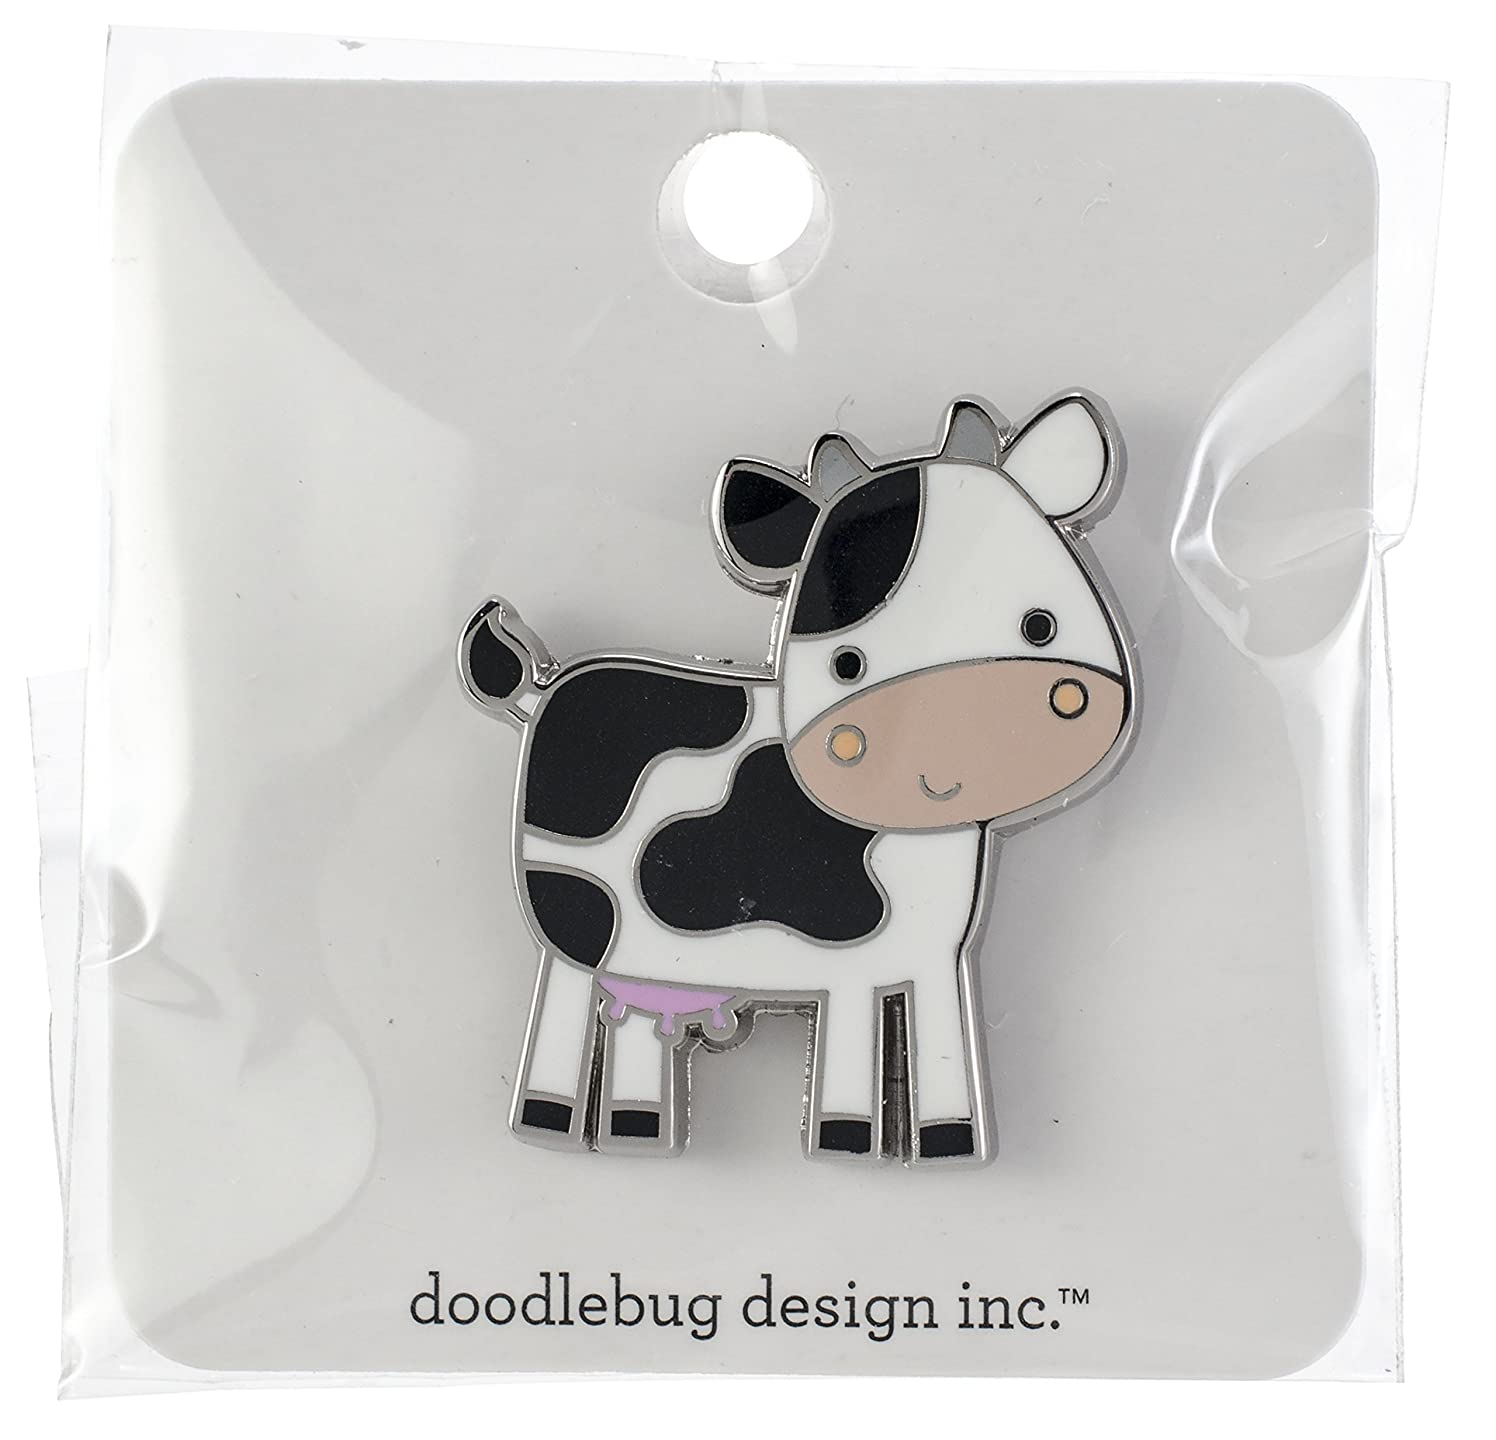 Doodlebug CP5925 Collectible Enamel Pin, What's What's Moo?